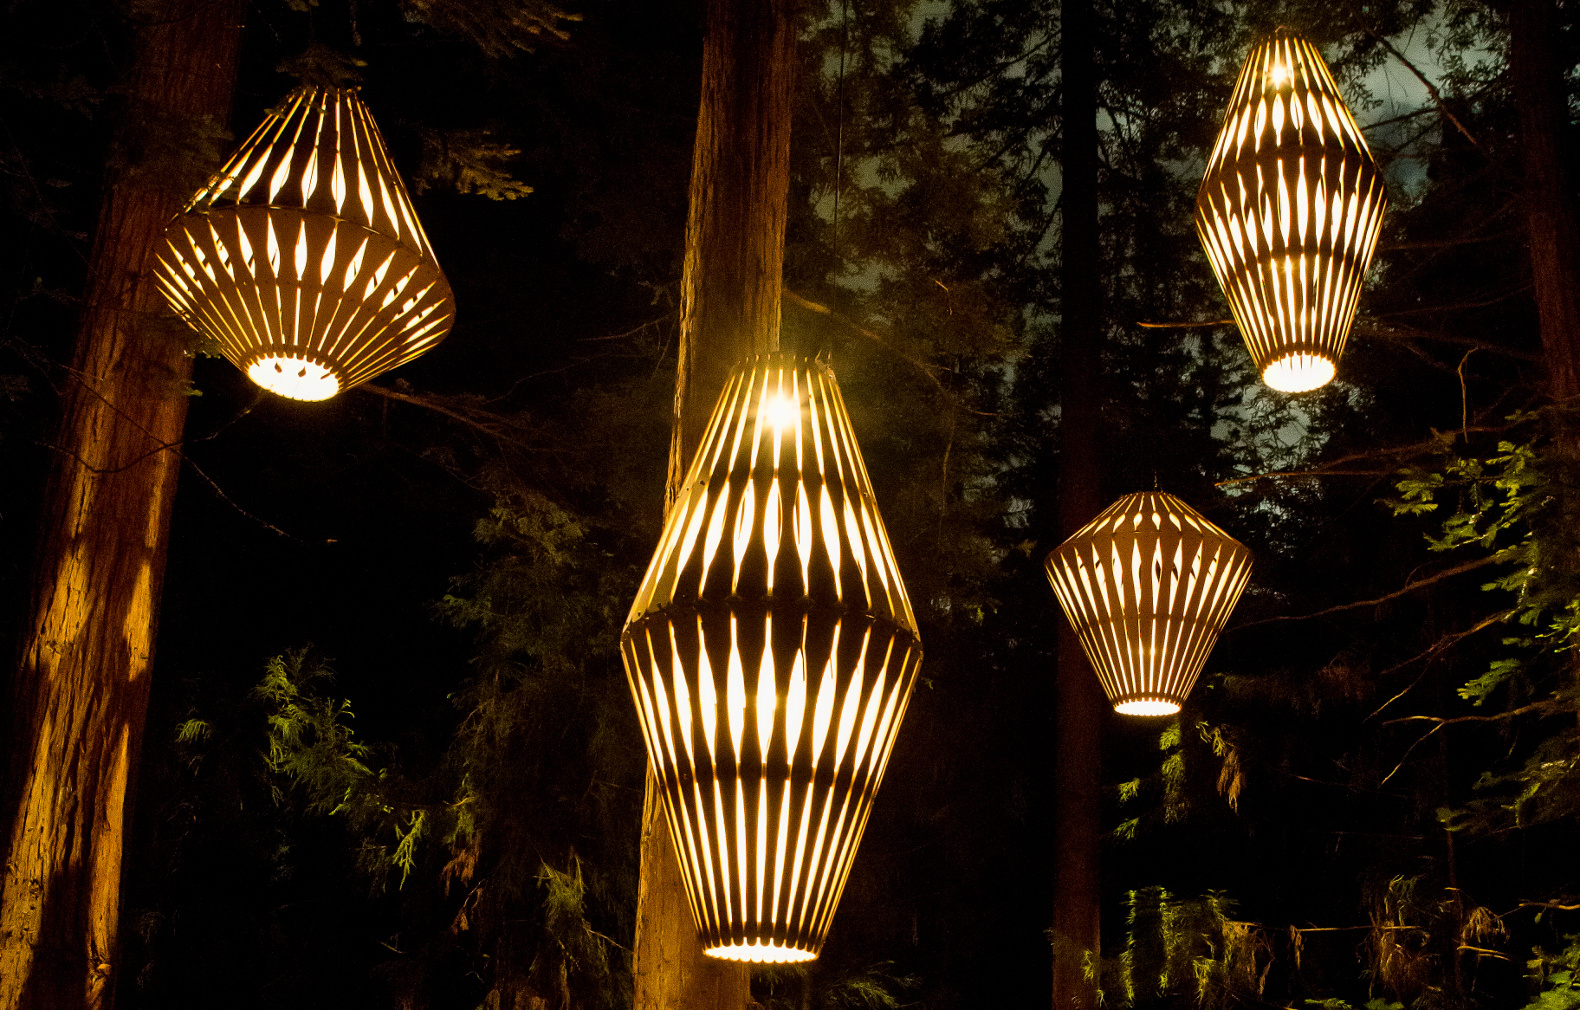 David Trubridge Lights Up A Magical Redwood Tree Walk In New Zealand